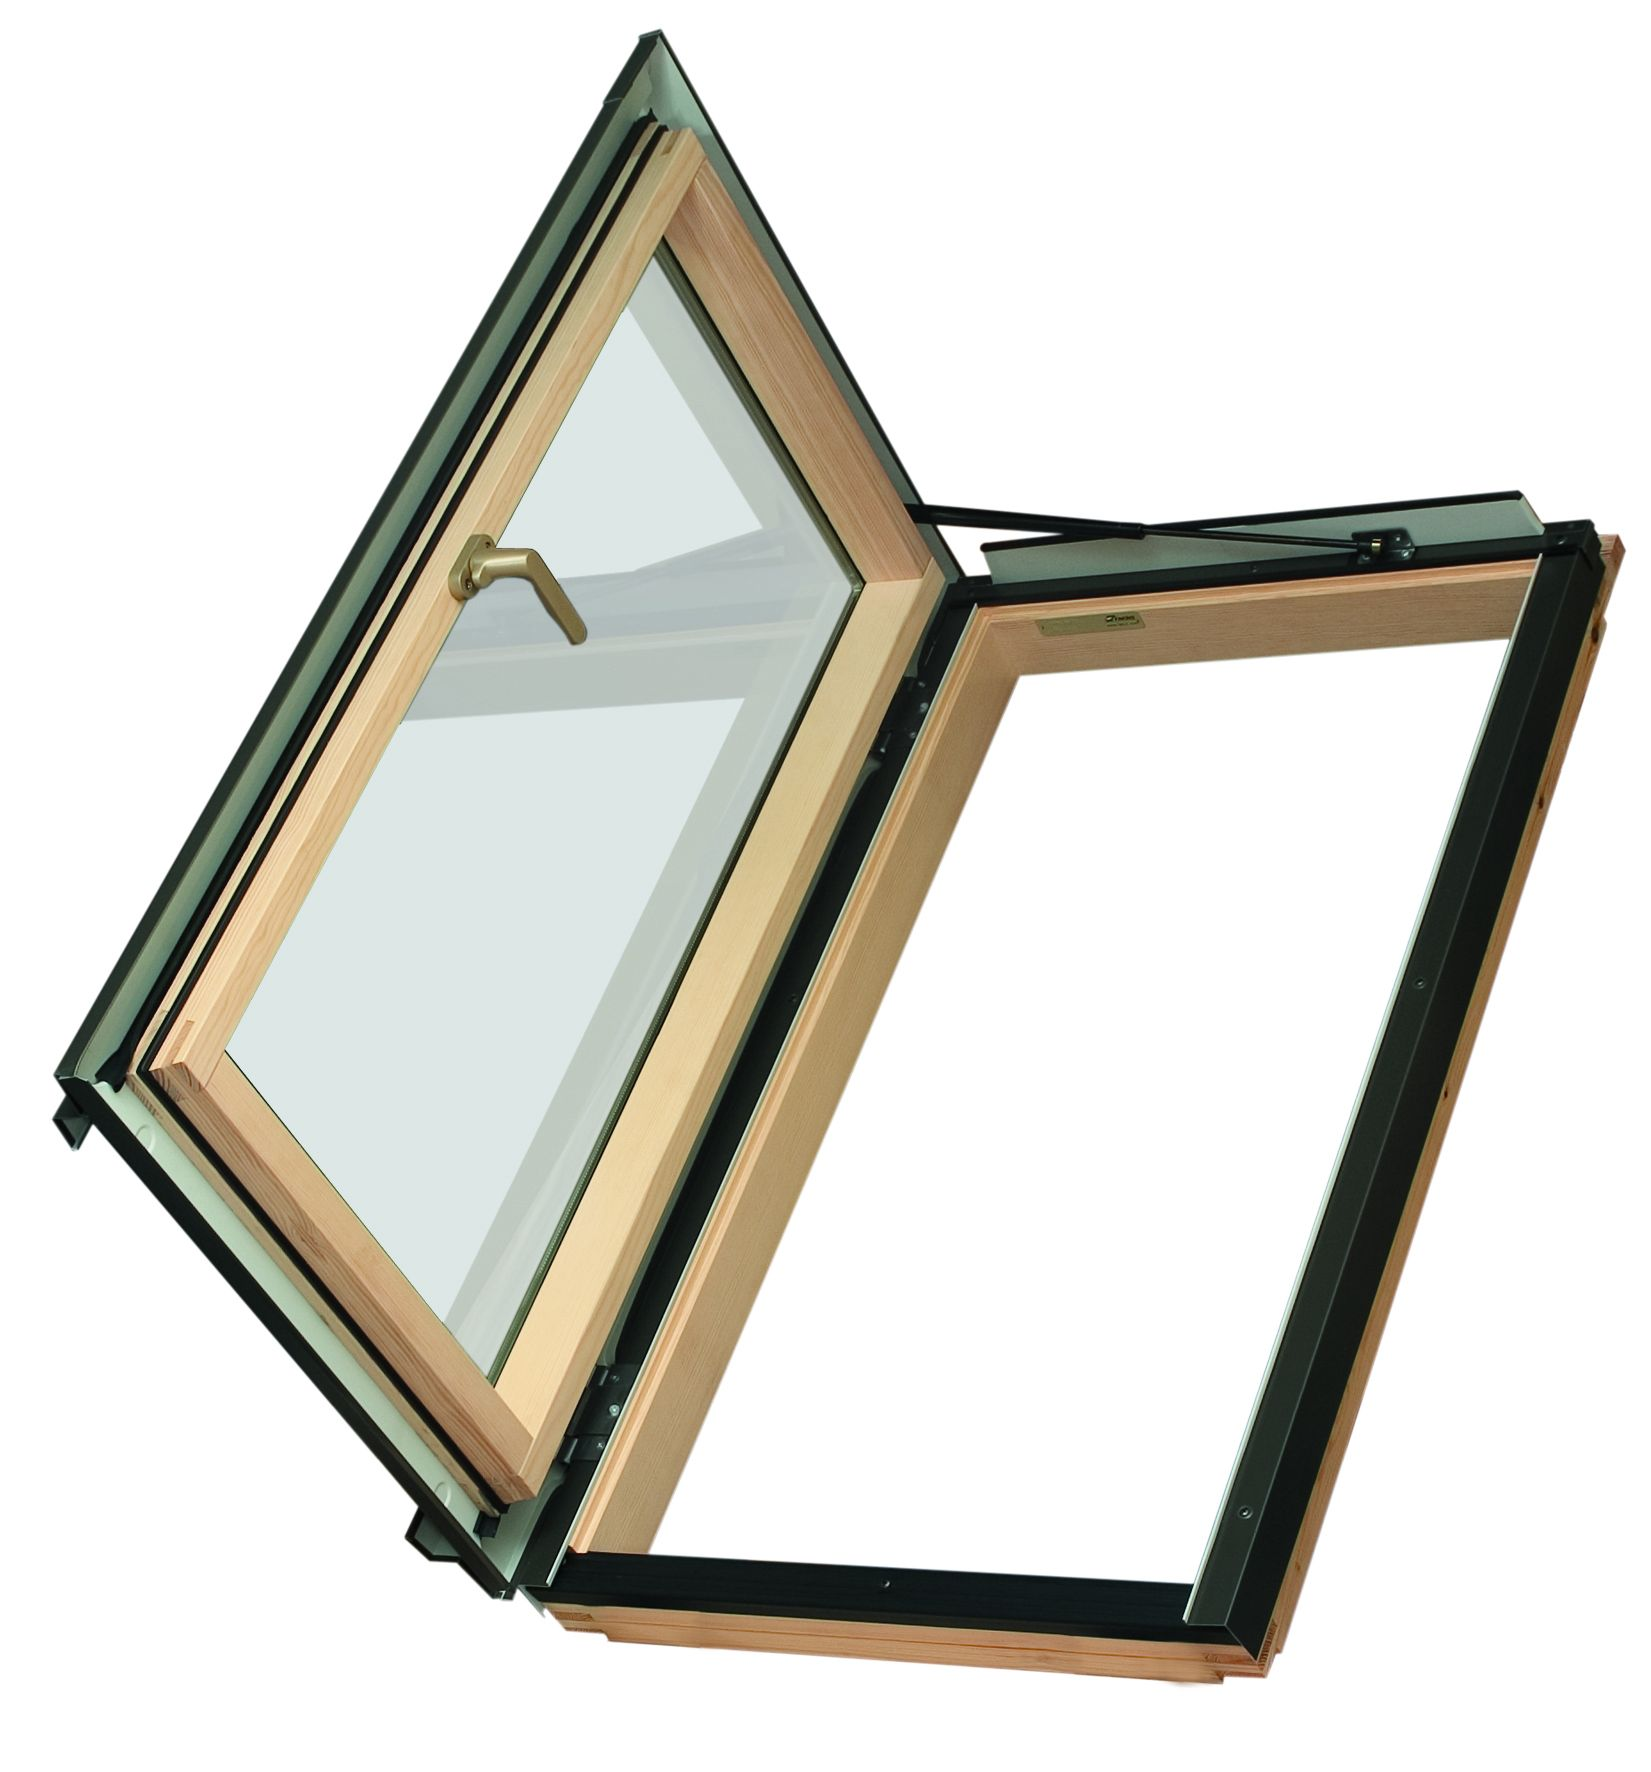 FAKRO FWU-L-69157 Side Hung Roof Access Window  24x38